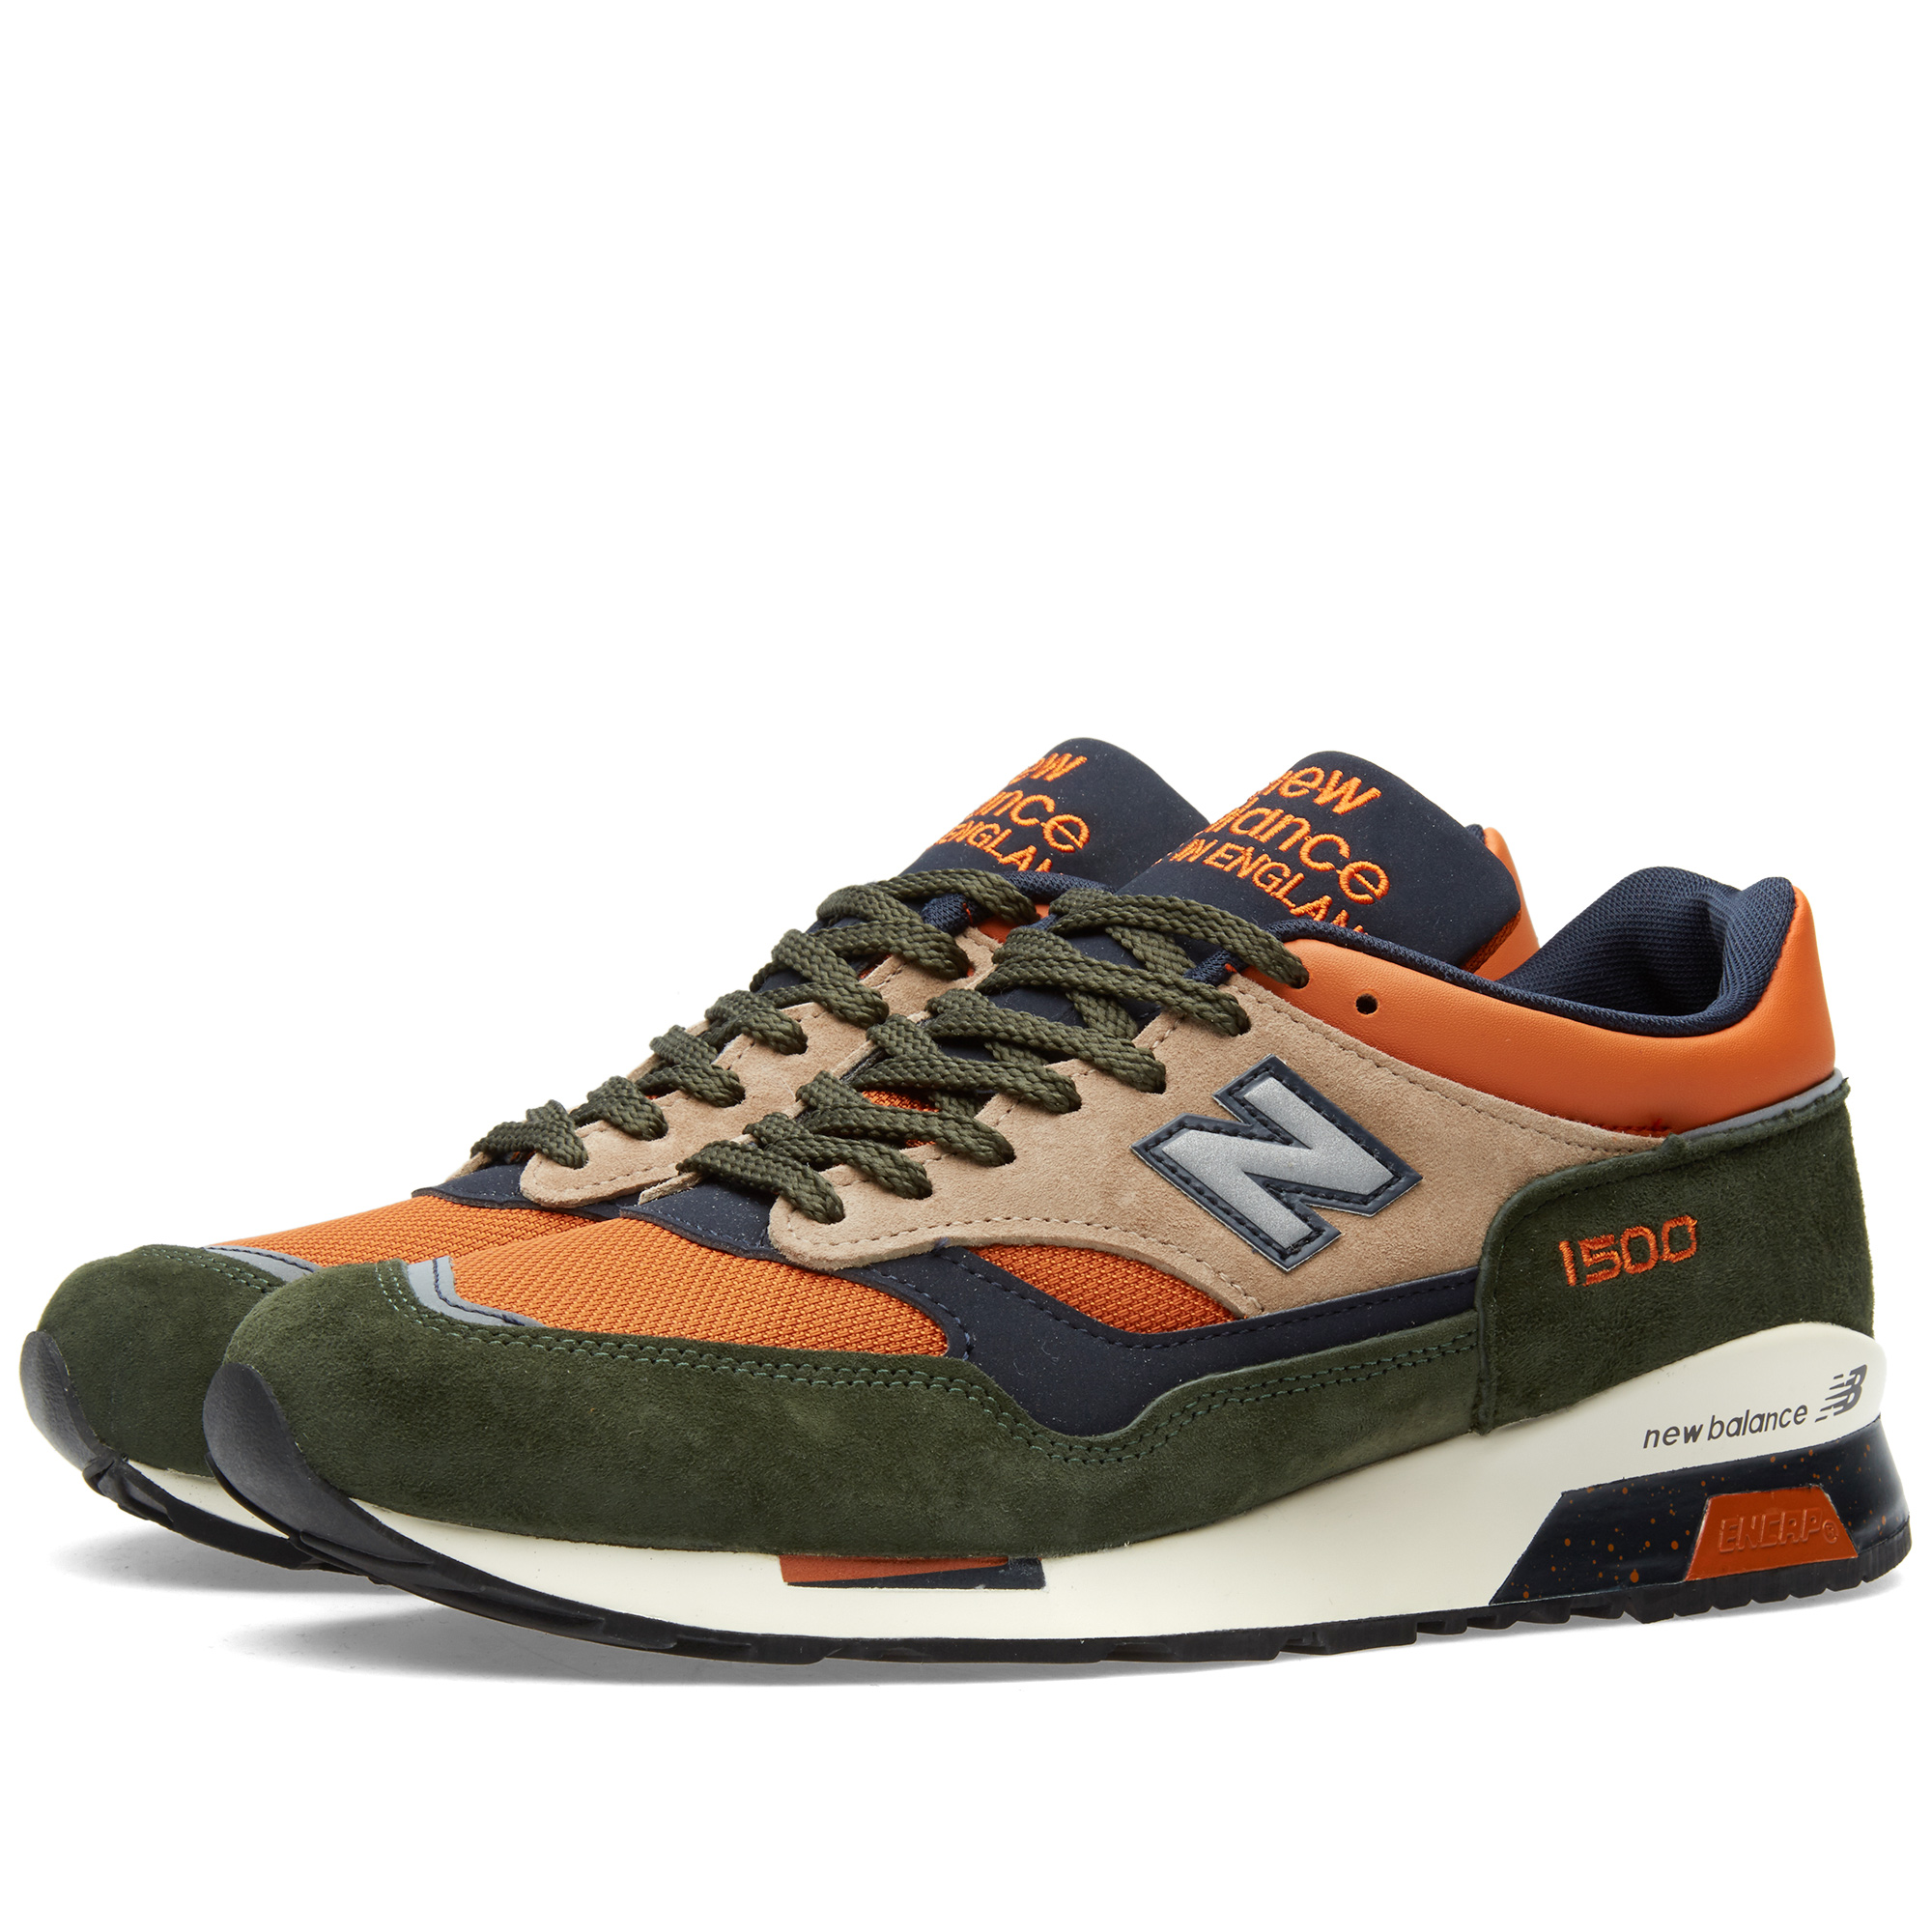 new balance green orange